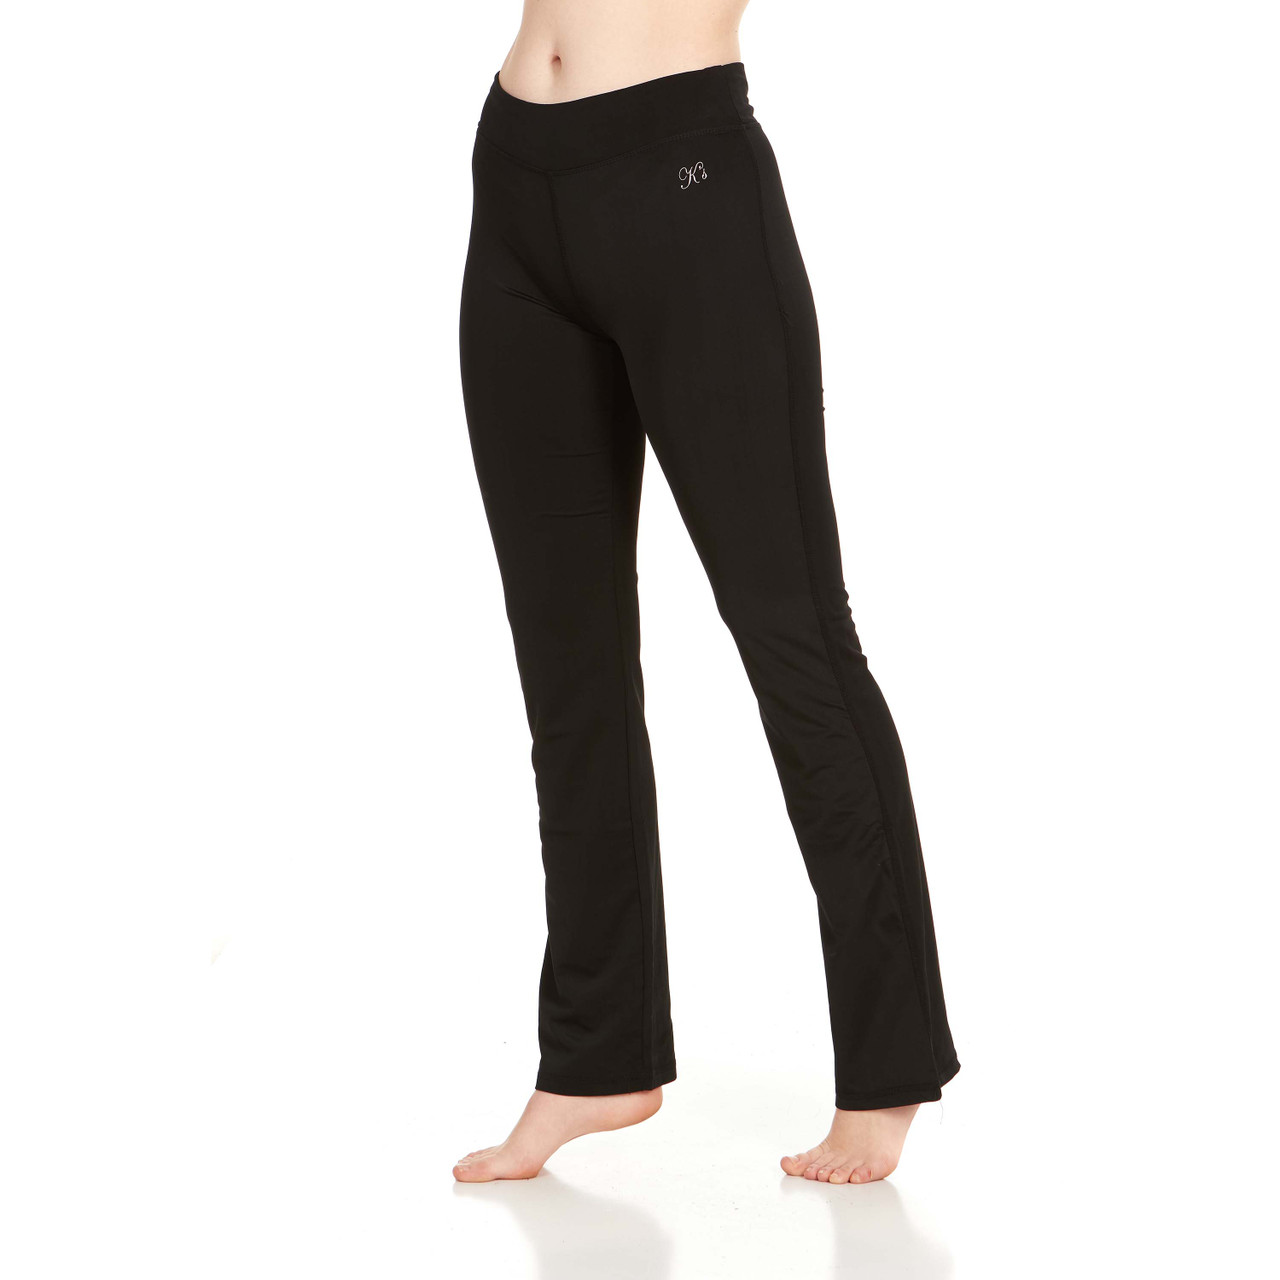 Women's Active Athletic Performance Leggings and Flare Pants - 2 Pack